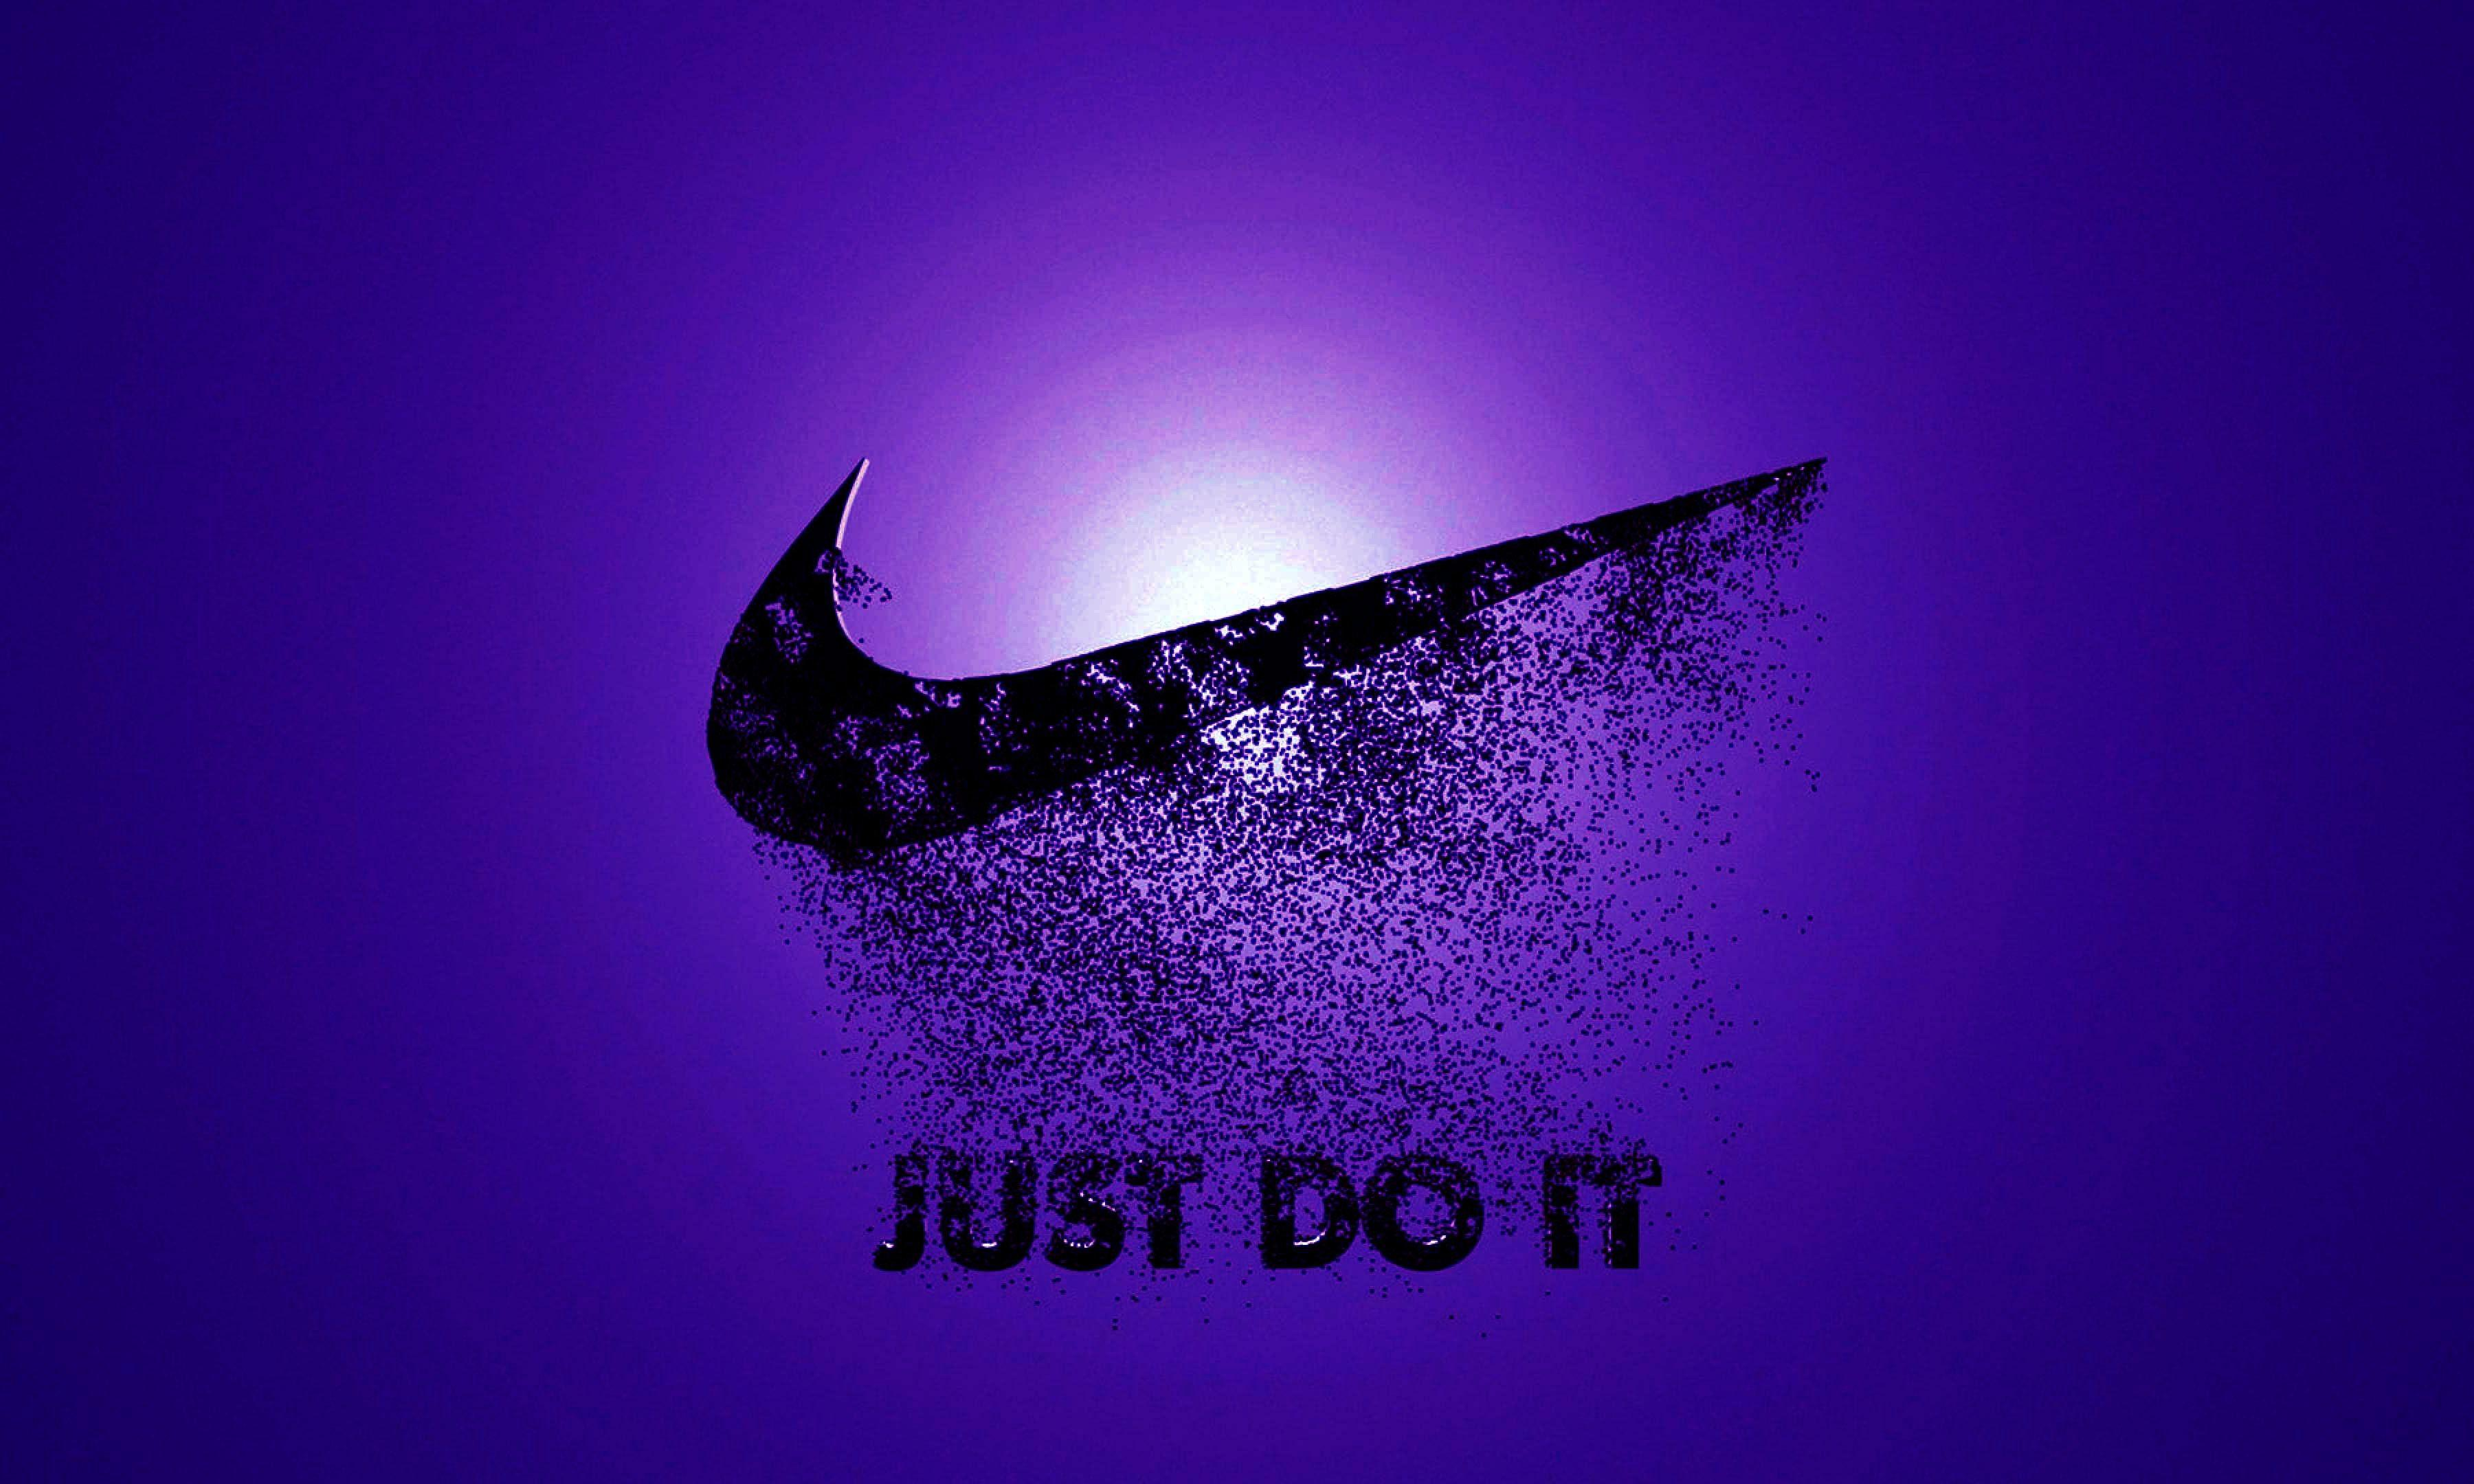 Purple Nike Wallpapers Top Free Purple Nike Backgrounds Wallpaperaccess